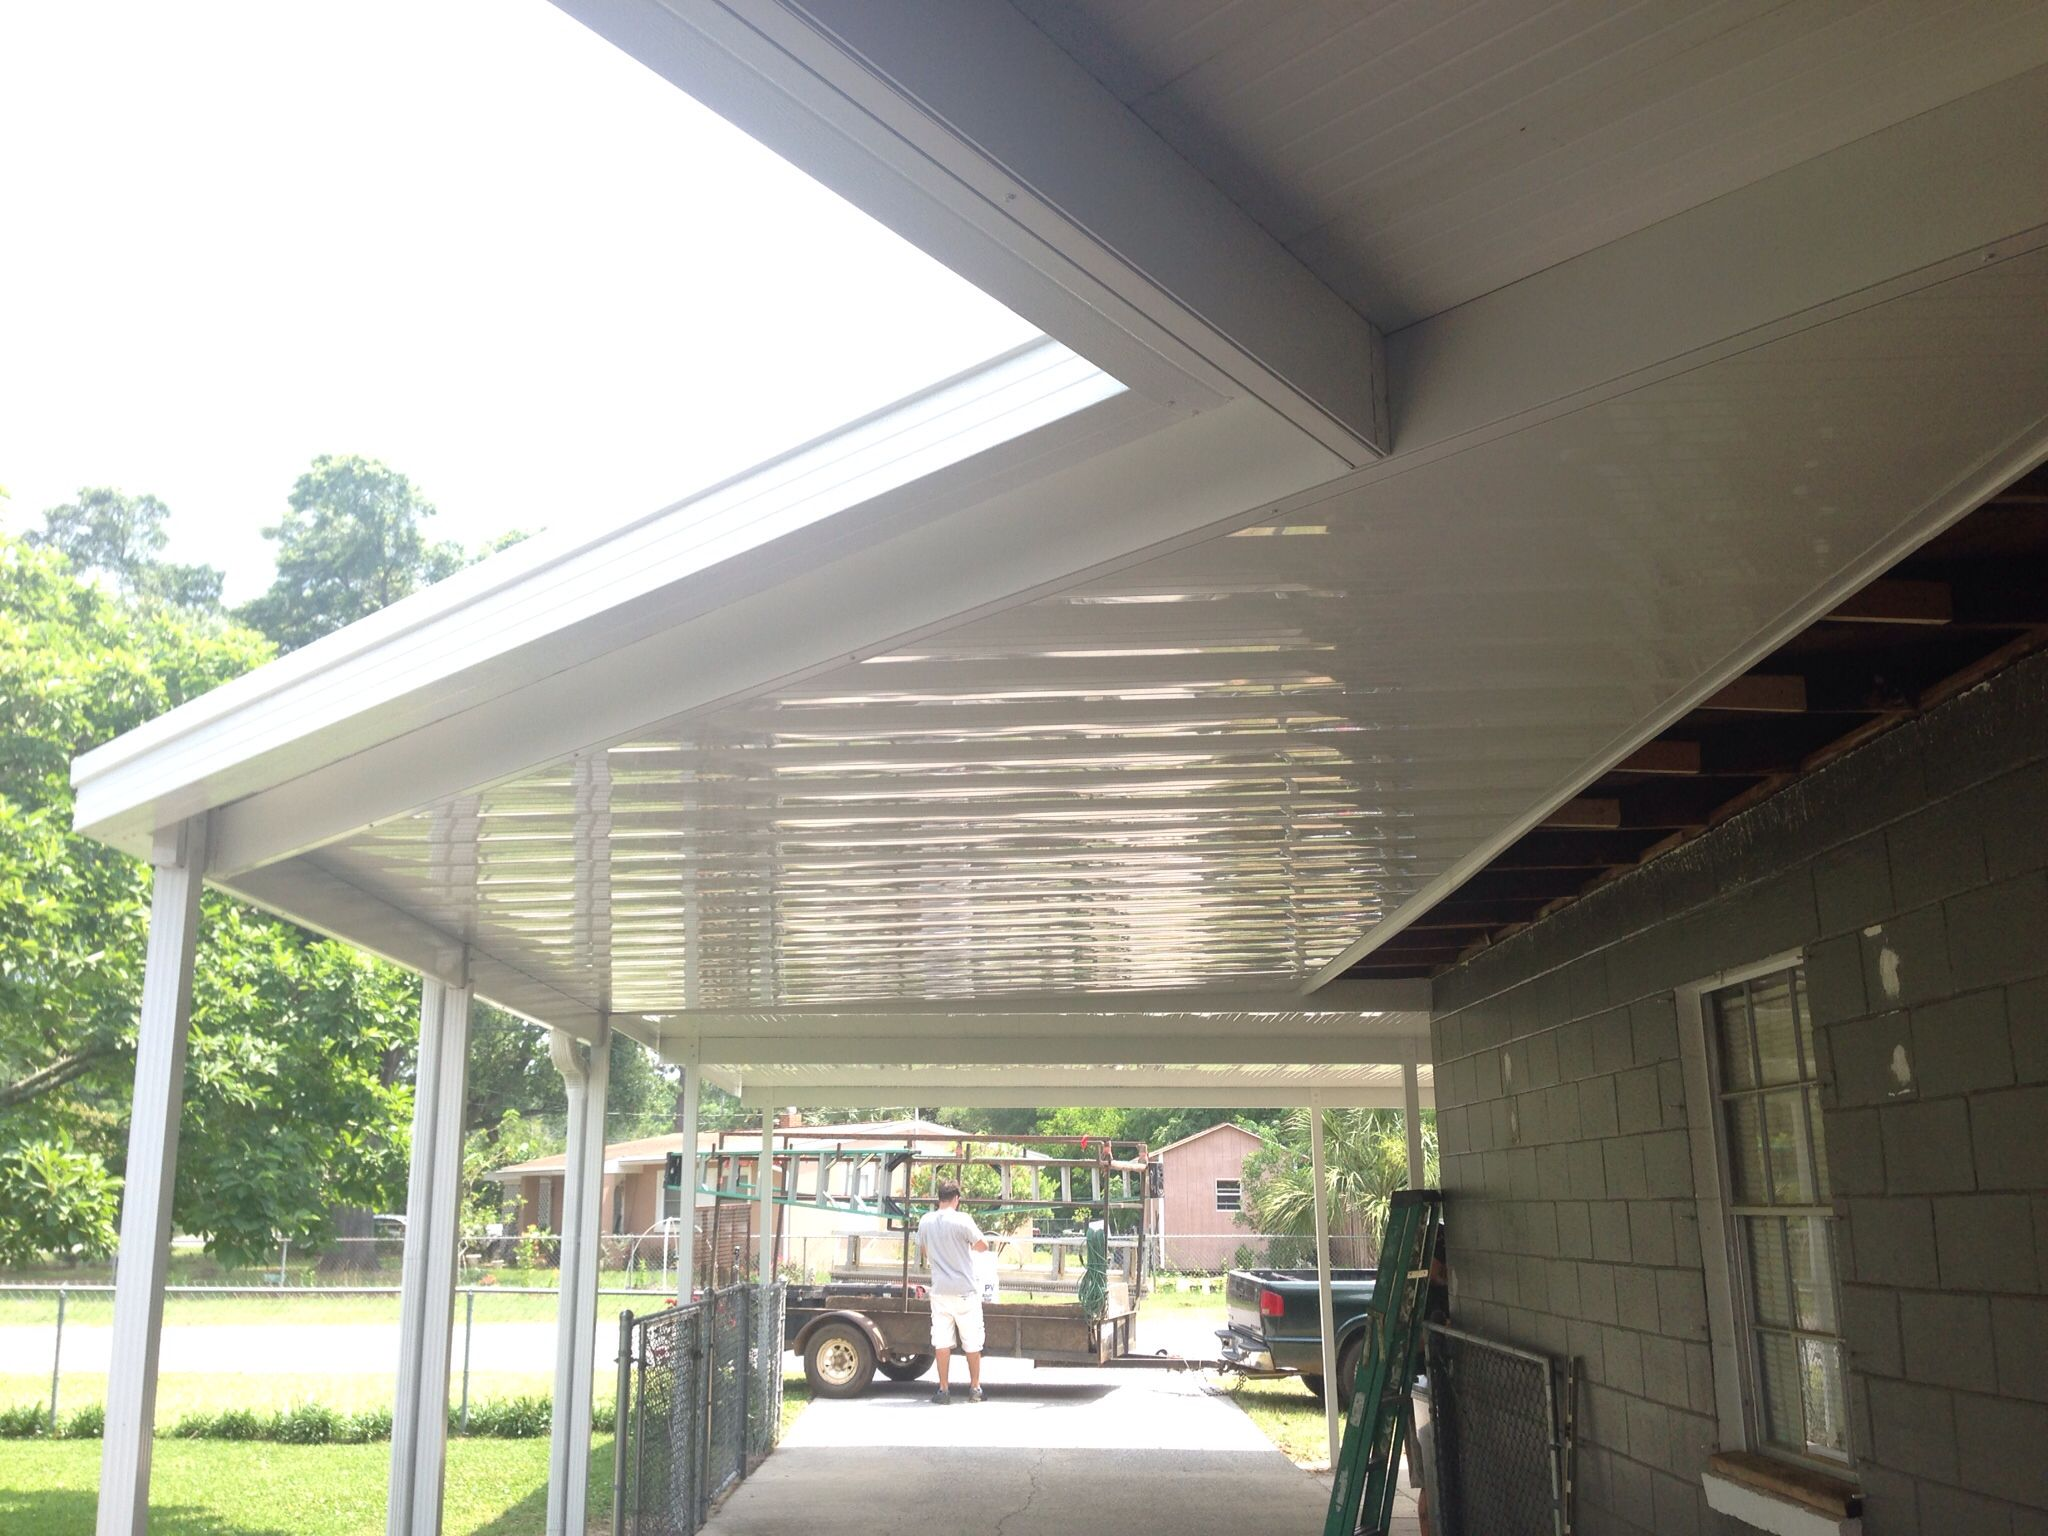 15 X 28 Patio Cover With Rain Gutters Heavy Duty 6 Beams And 4 Posts Set Into Concrete And An Addition Backyard Design Aluminum Patio Covers Covered Patio